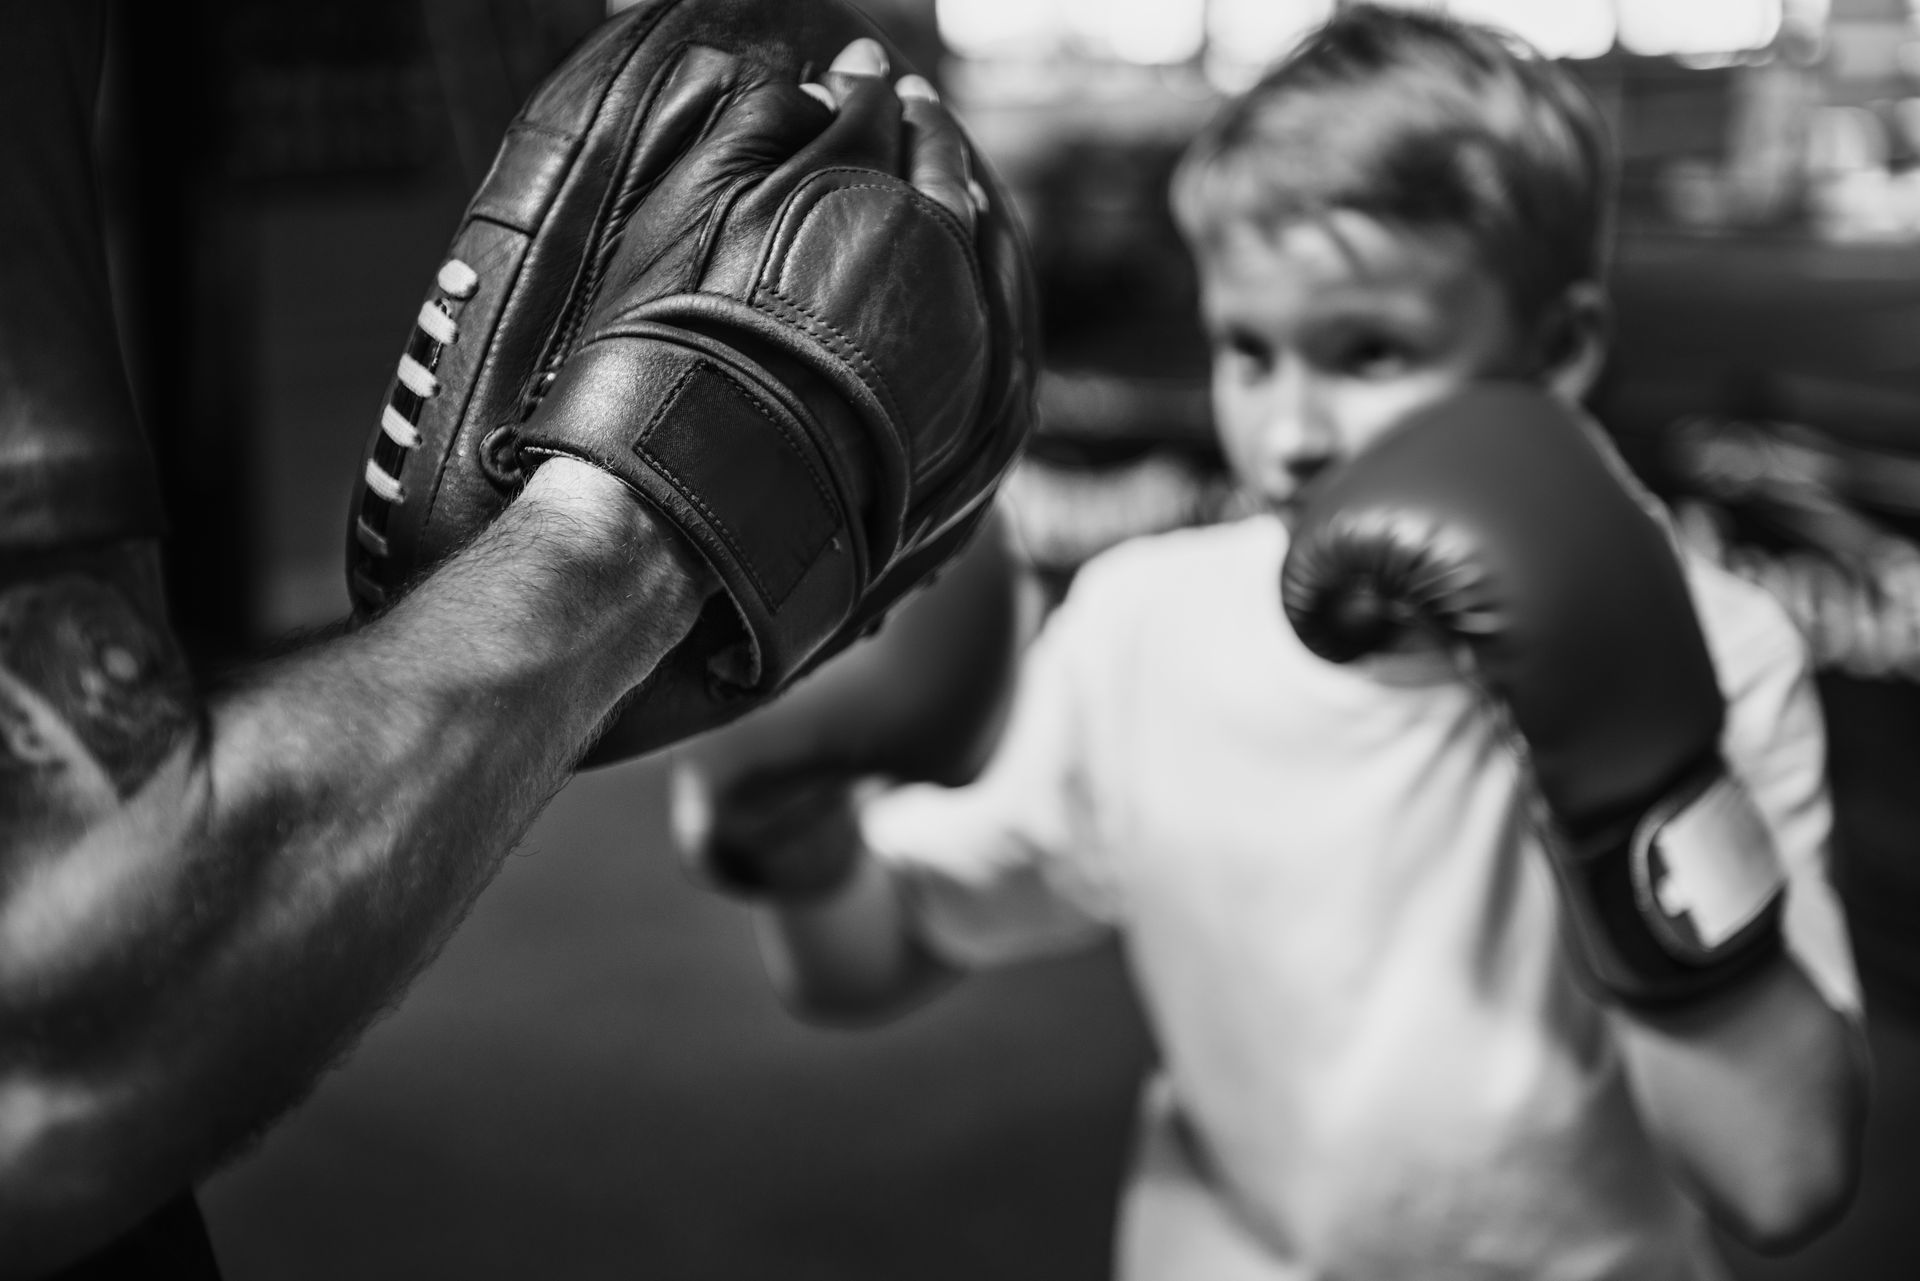 boy-boxing-training-punch-mitts-exercise-concept-PSYNPUU.jpg